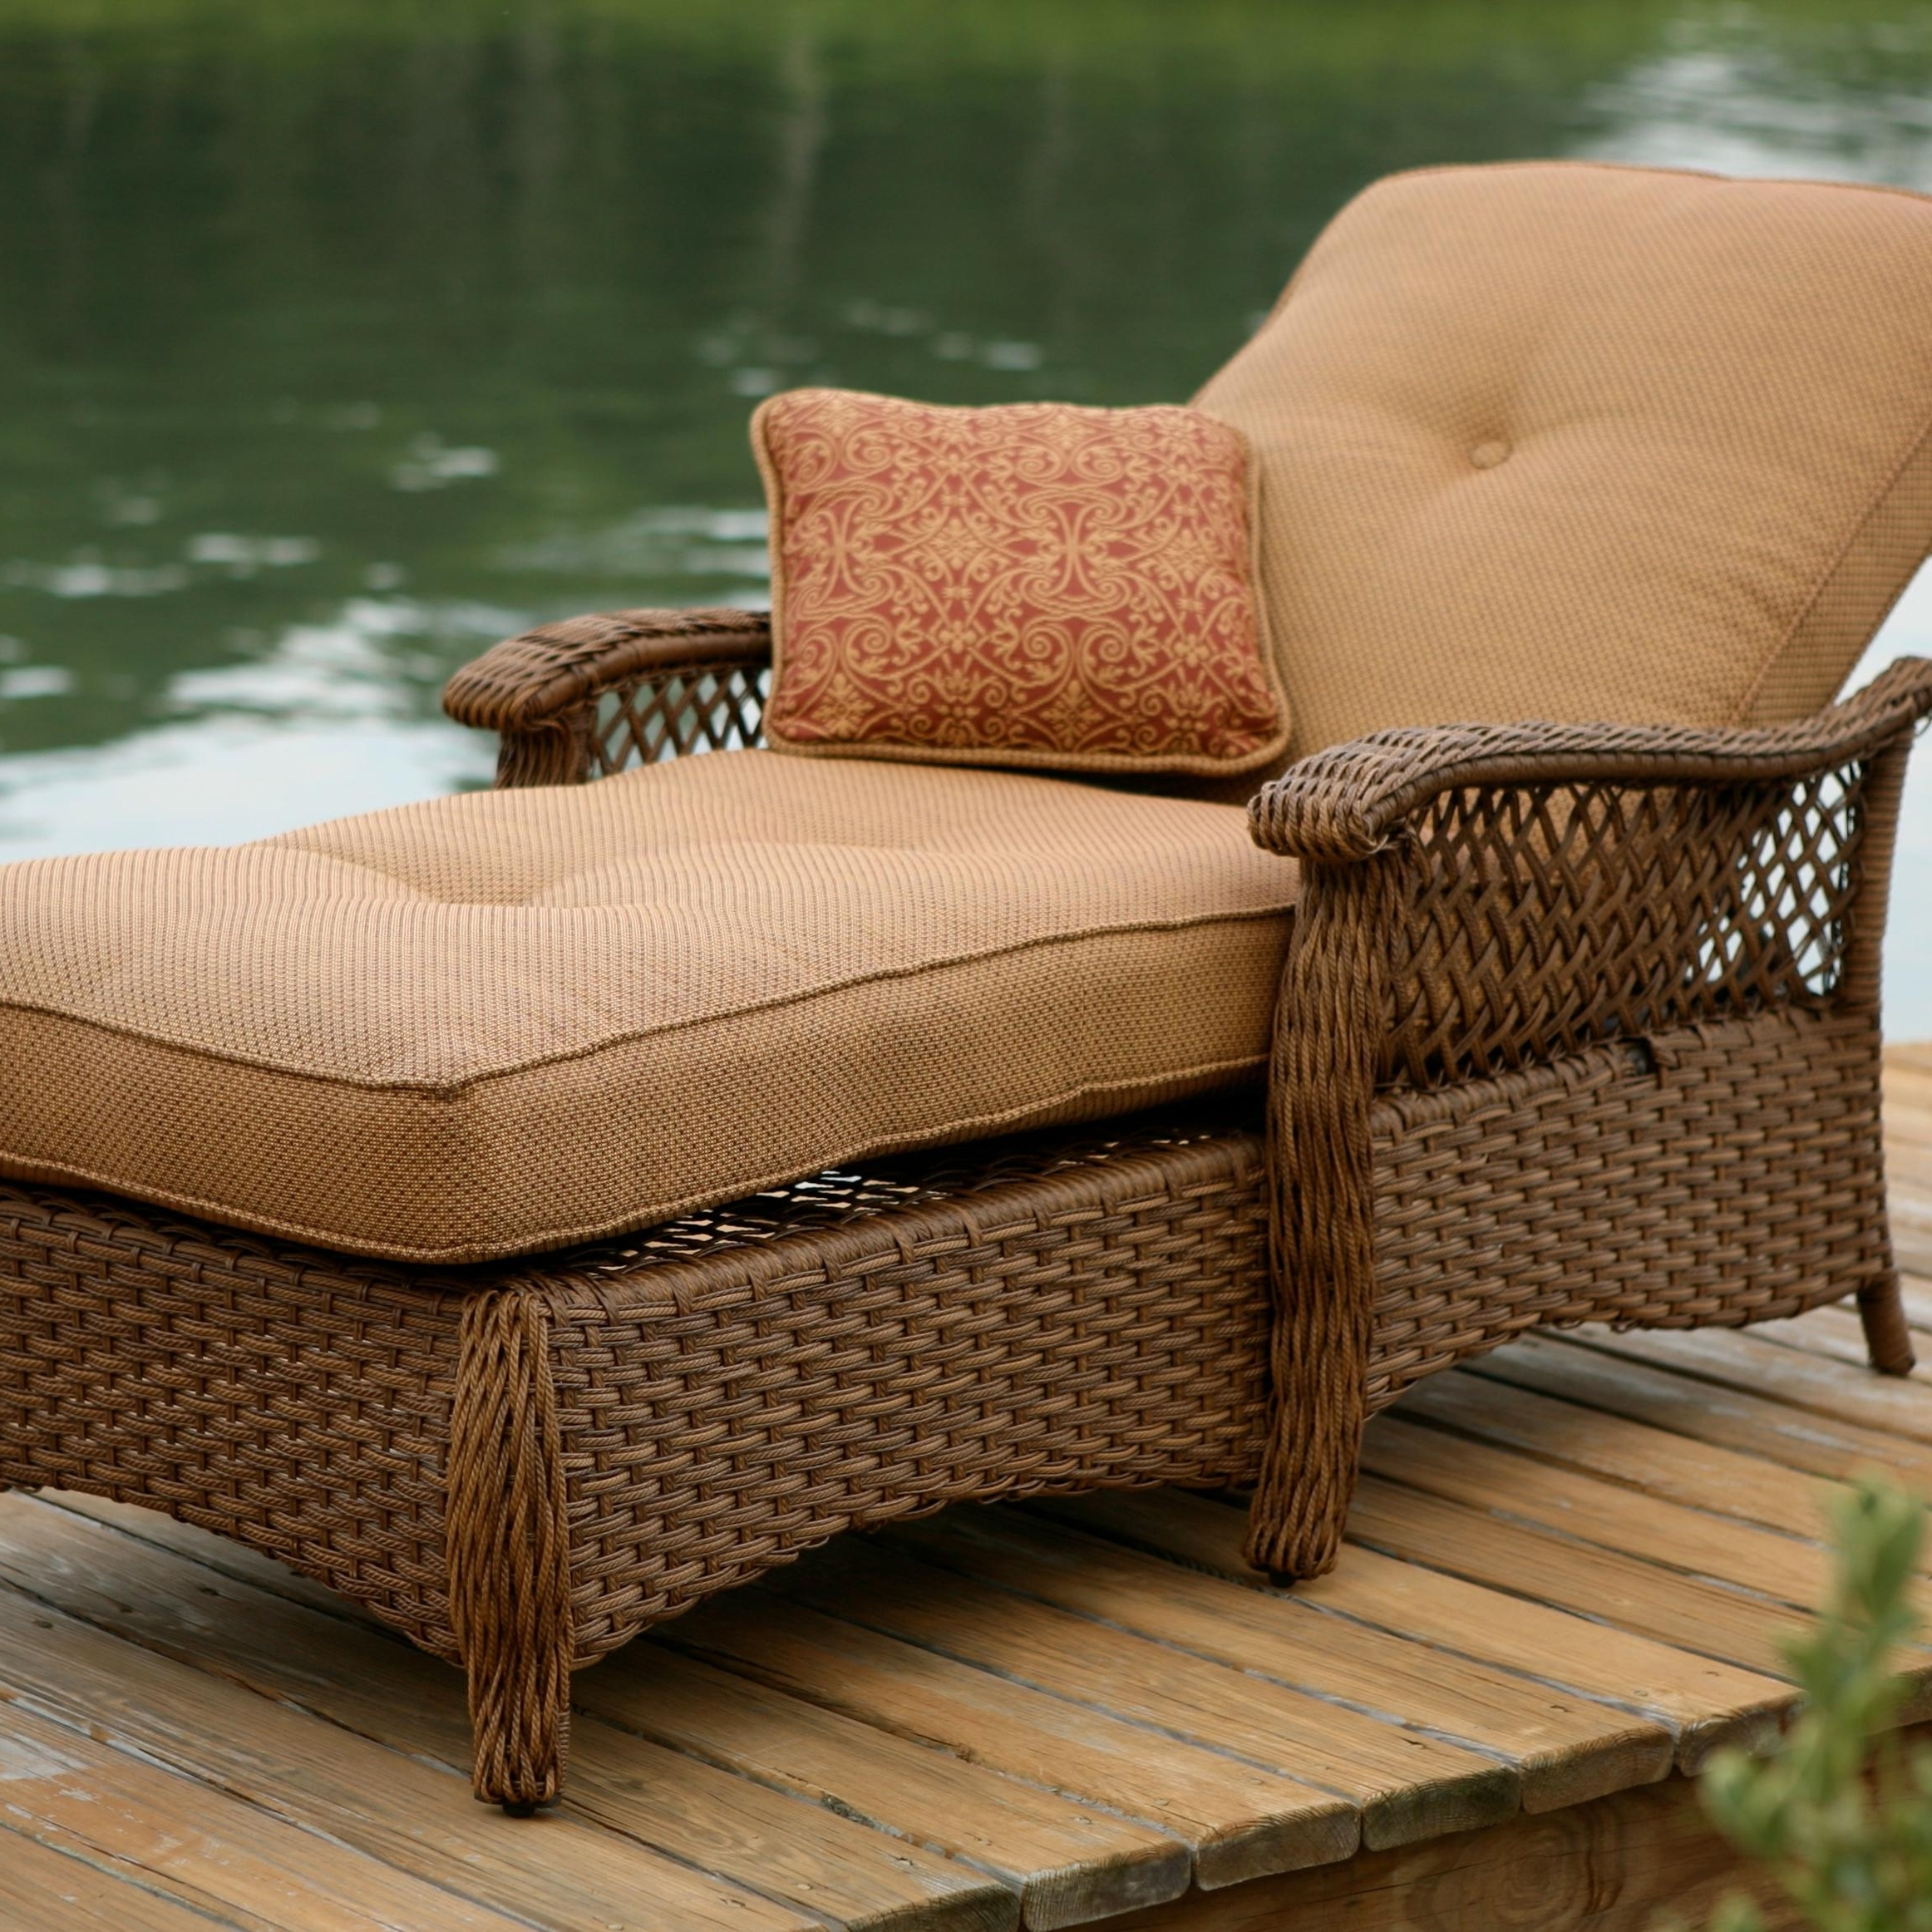 Well Liked Woven Chaise Lounge Chair • Lounge Chairs Ideas For Wicker Chaise Lounge Chairs For Outdoor (View 14 of 15)